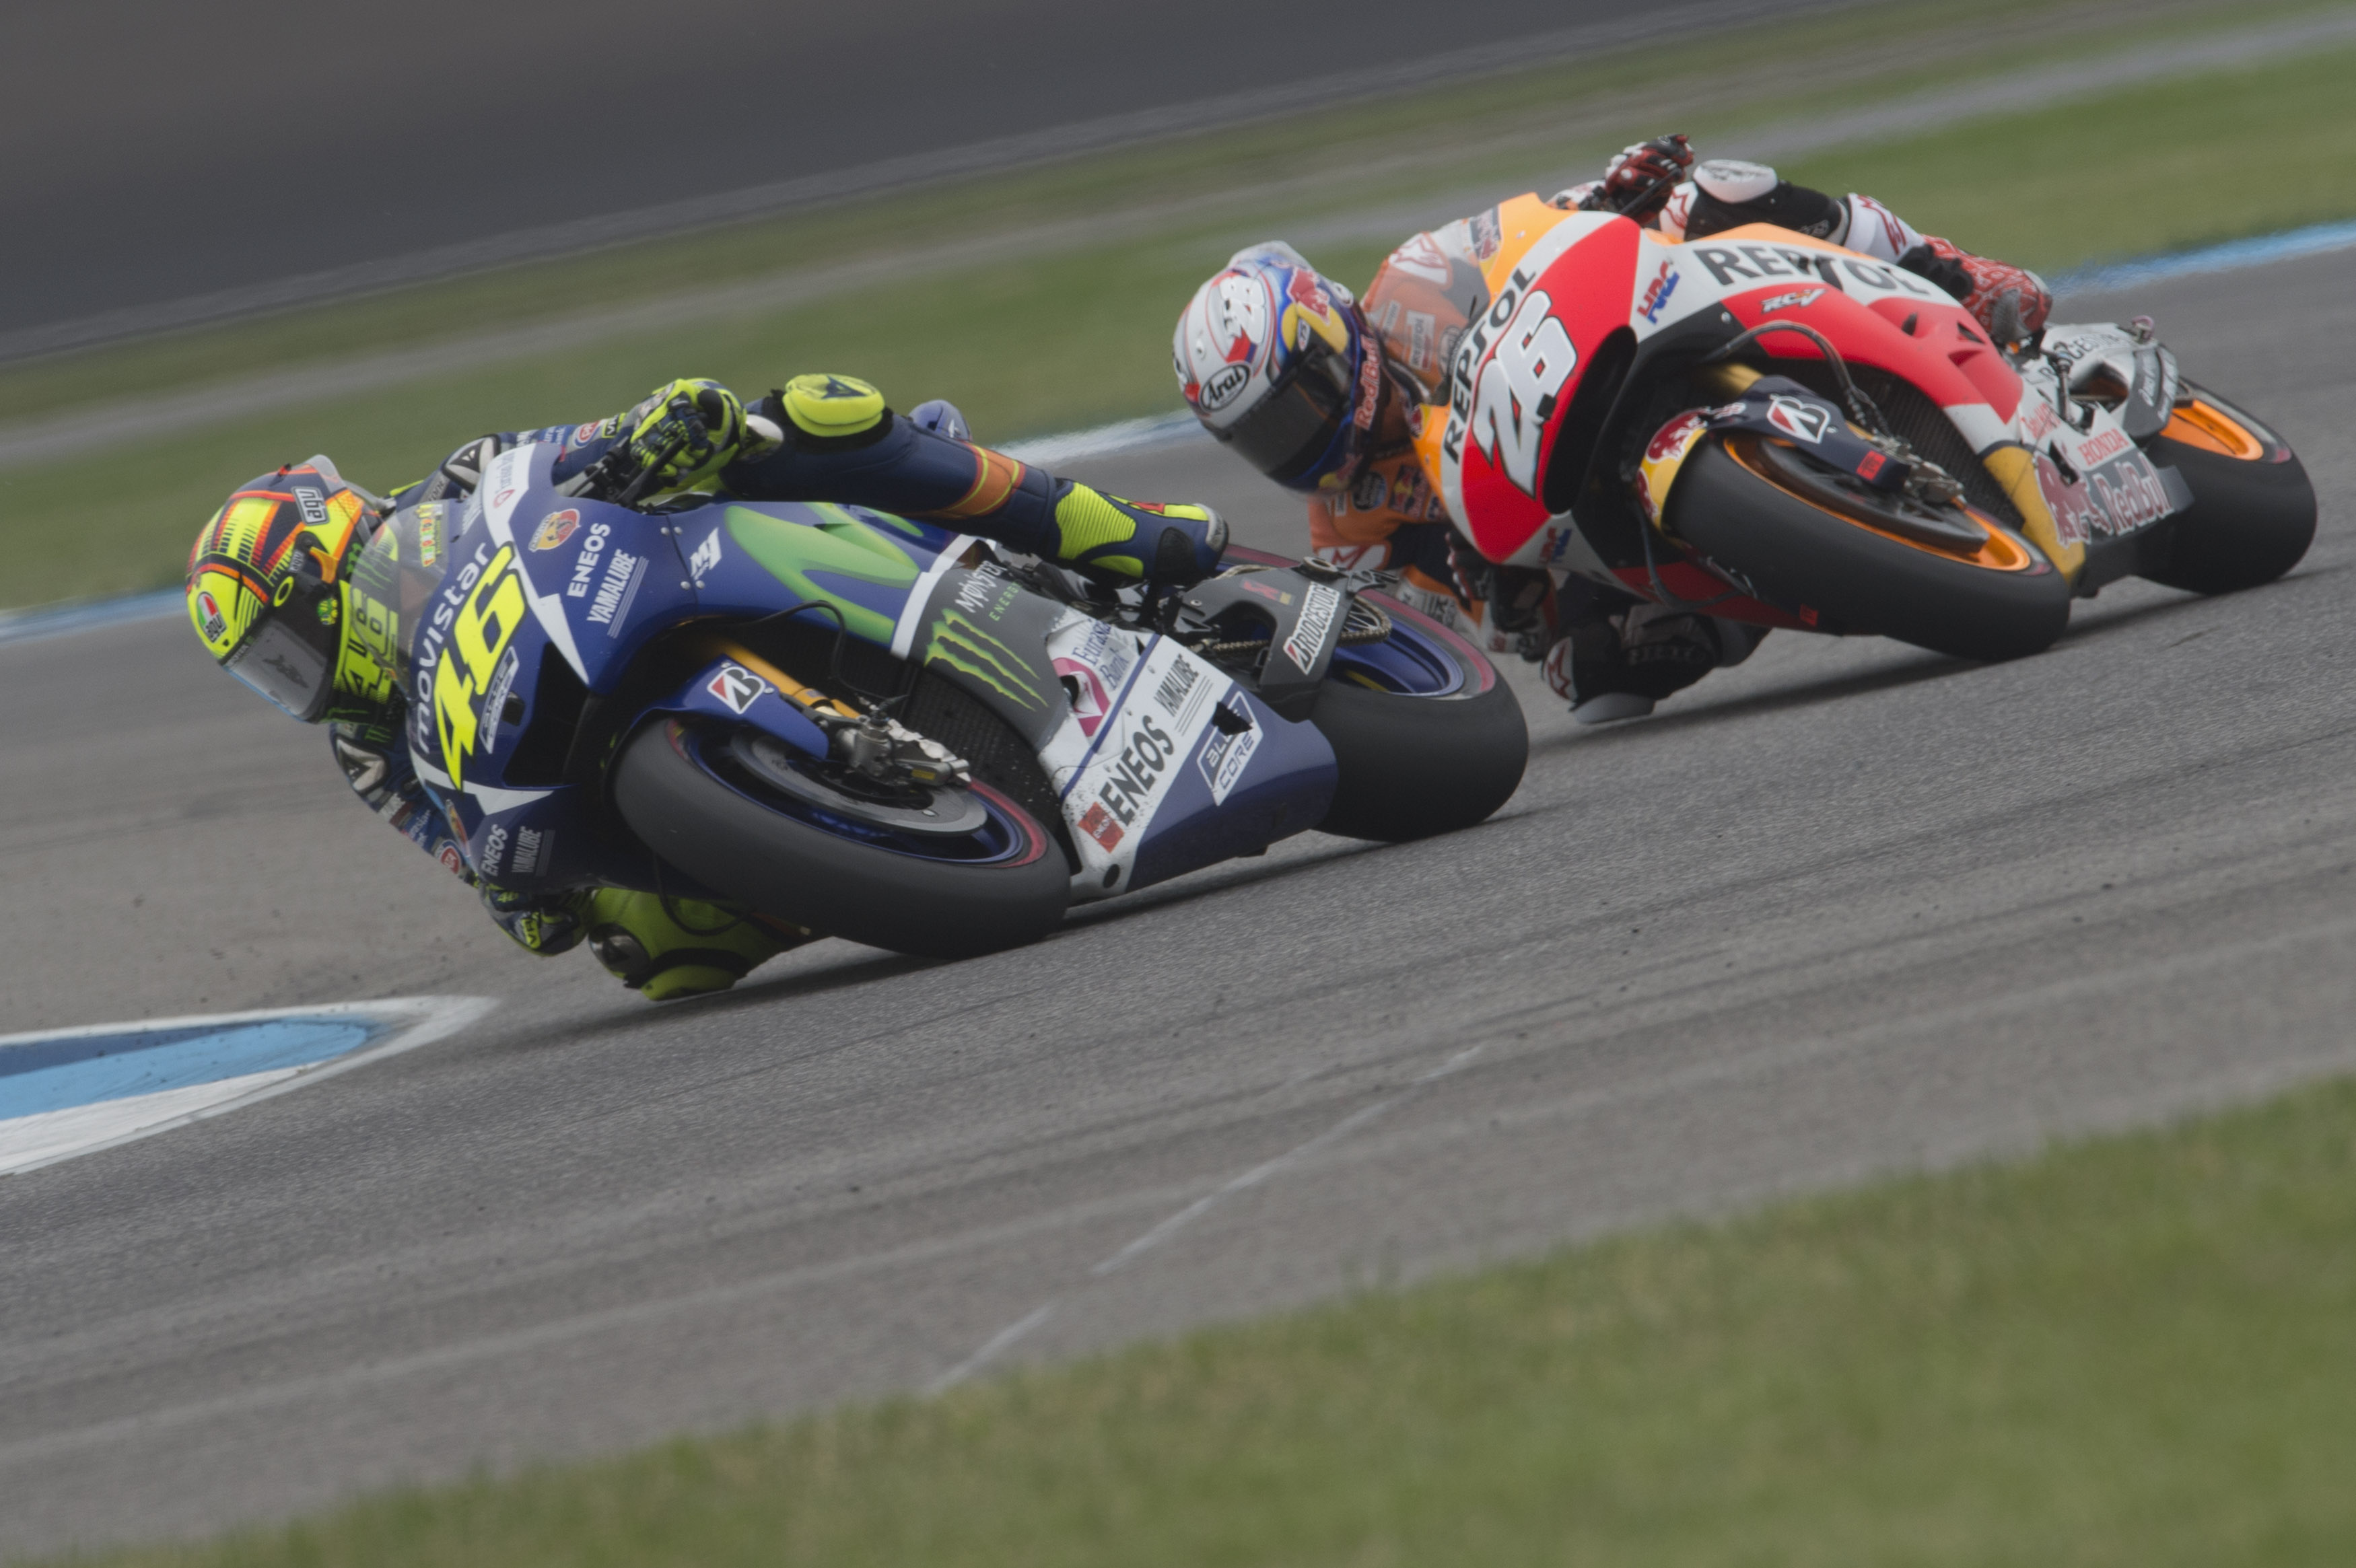 MotoGp Red Bull U.S. Indianapolis Grand Prix - Race